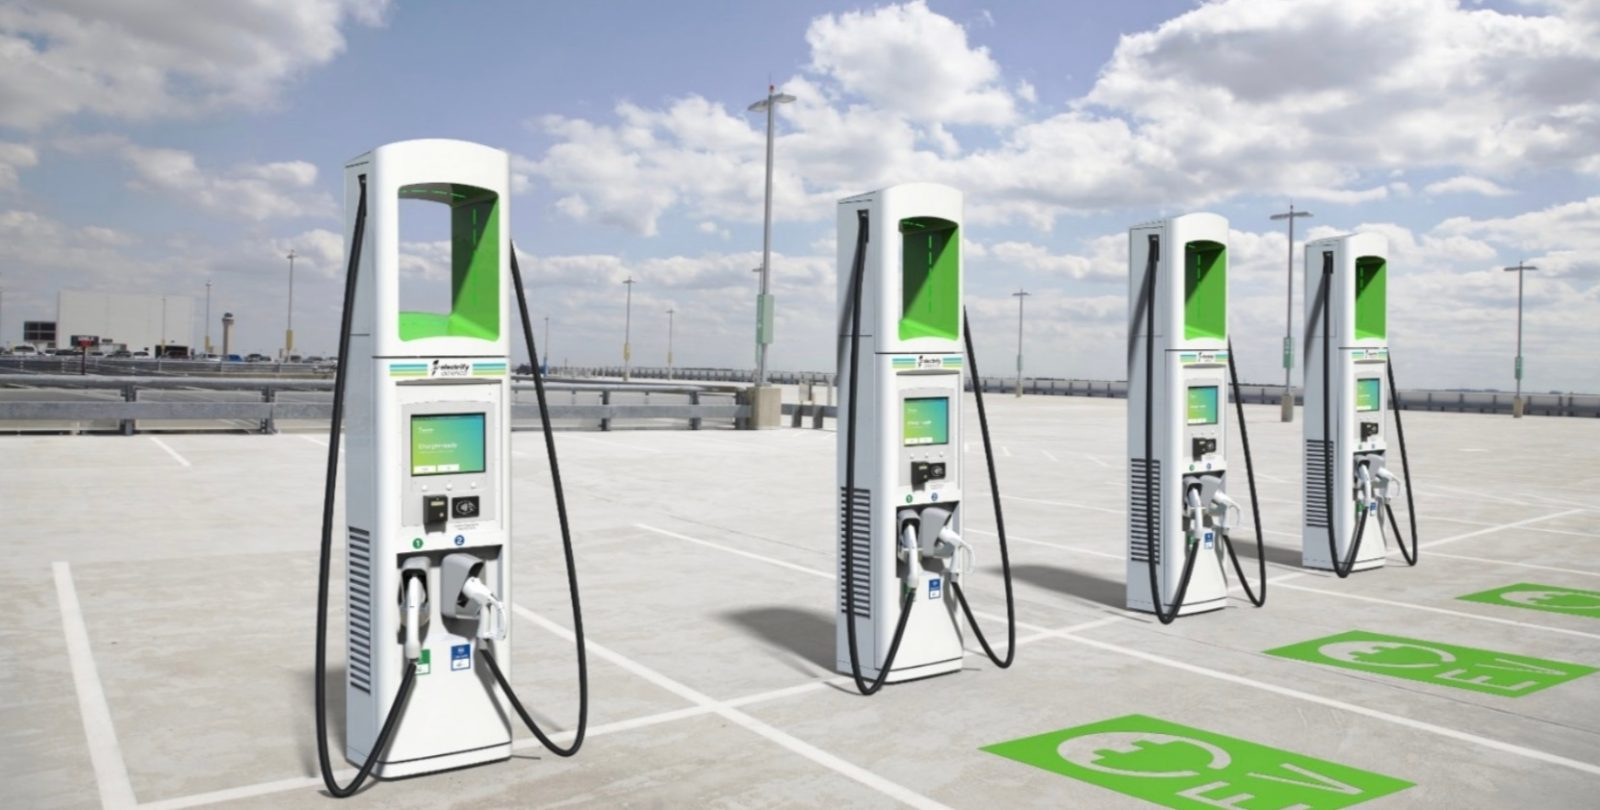 30 states allow kWh pricing, but non-Tesla EV drivers mostly miss benefits | Electrek